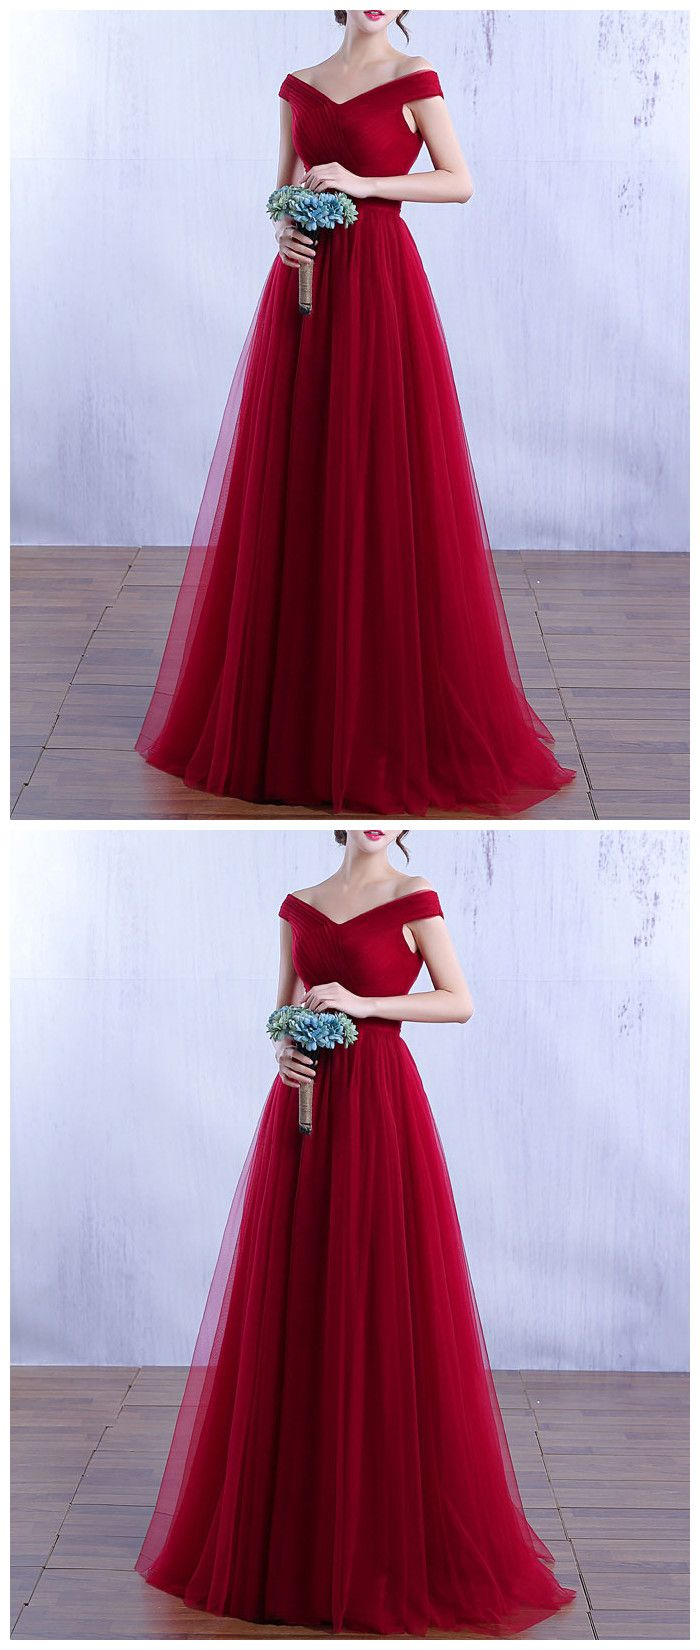 Burgundy tulle long prom dress burgundy bridesmaid dress hiprom